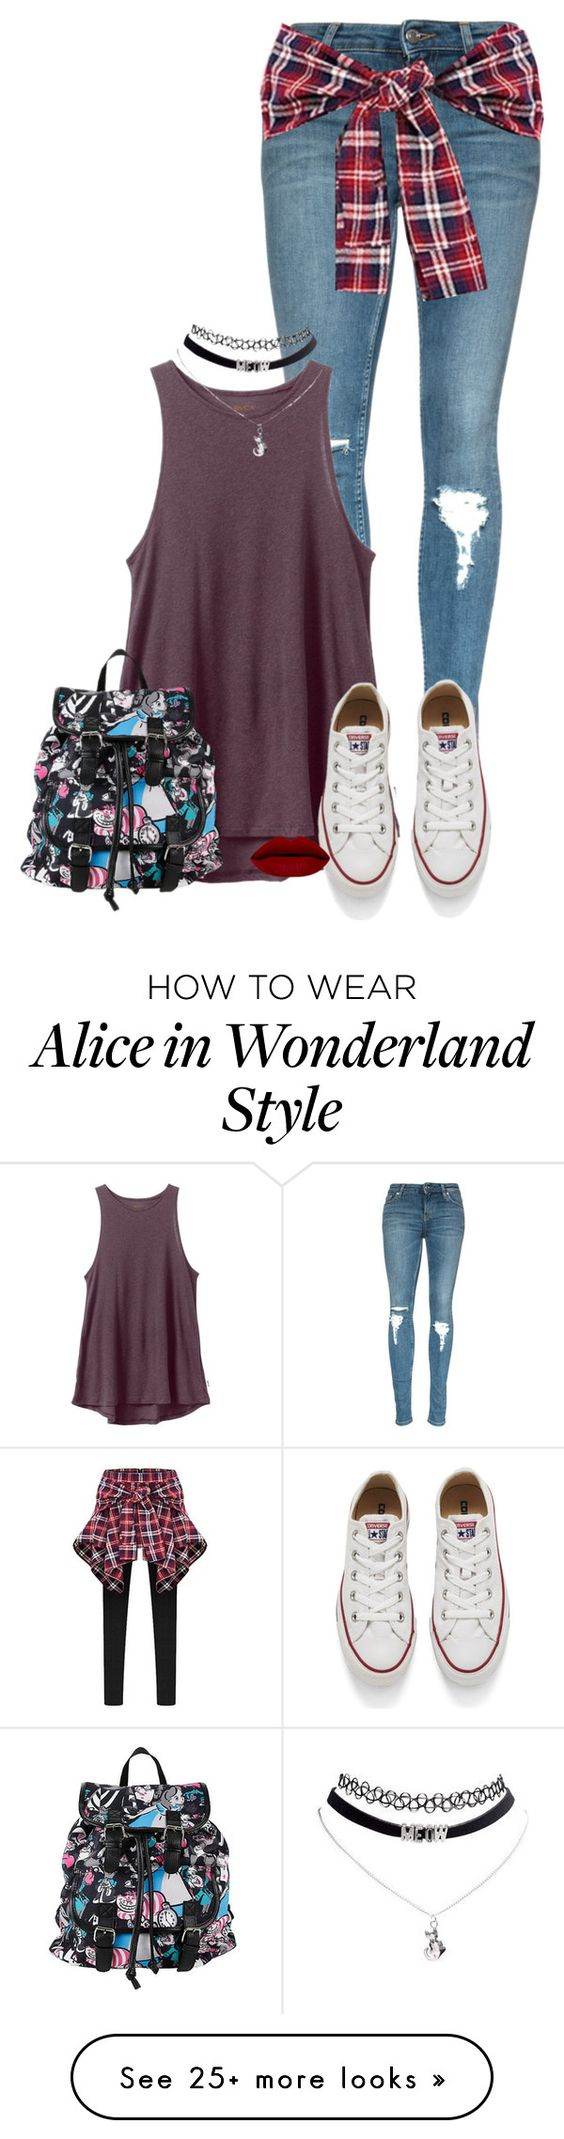 """What I Would like my sim to wear #1"" by fanfic123fanatic on Polyvore featuring RVCA, Converse, Disney, women's clothing, women, female, woman, misses and juniors"